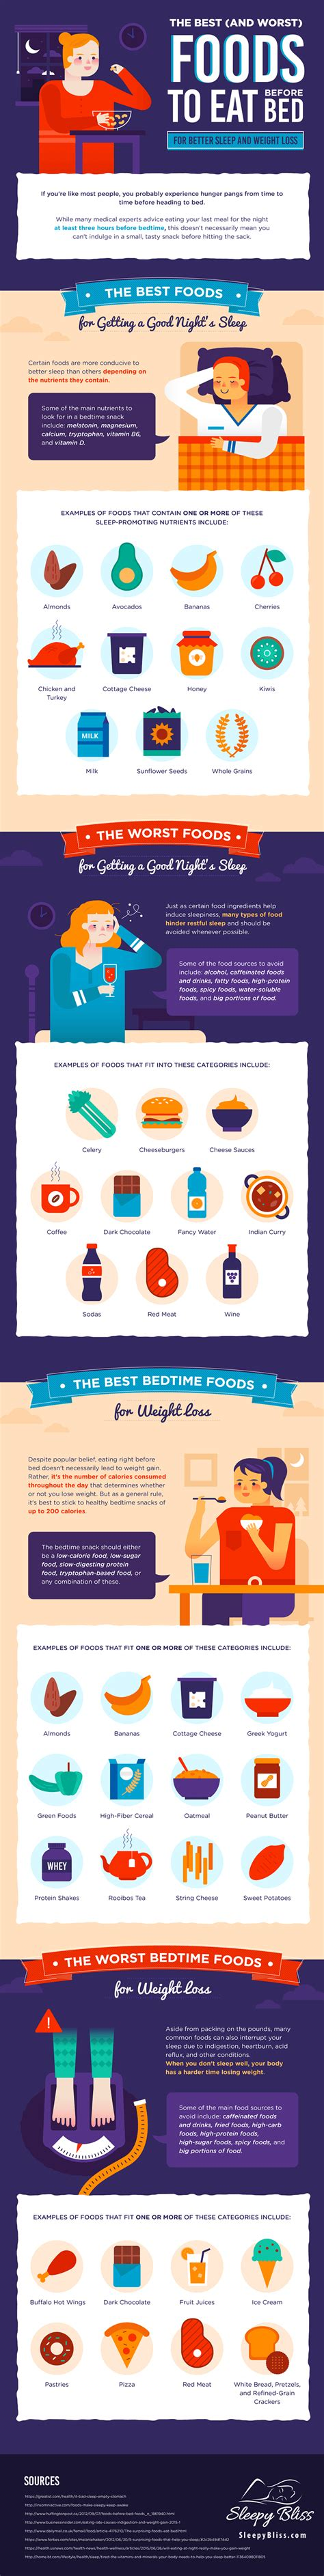 food to eat before bed the best and worst foods to eat before bed sleepy bliss